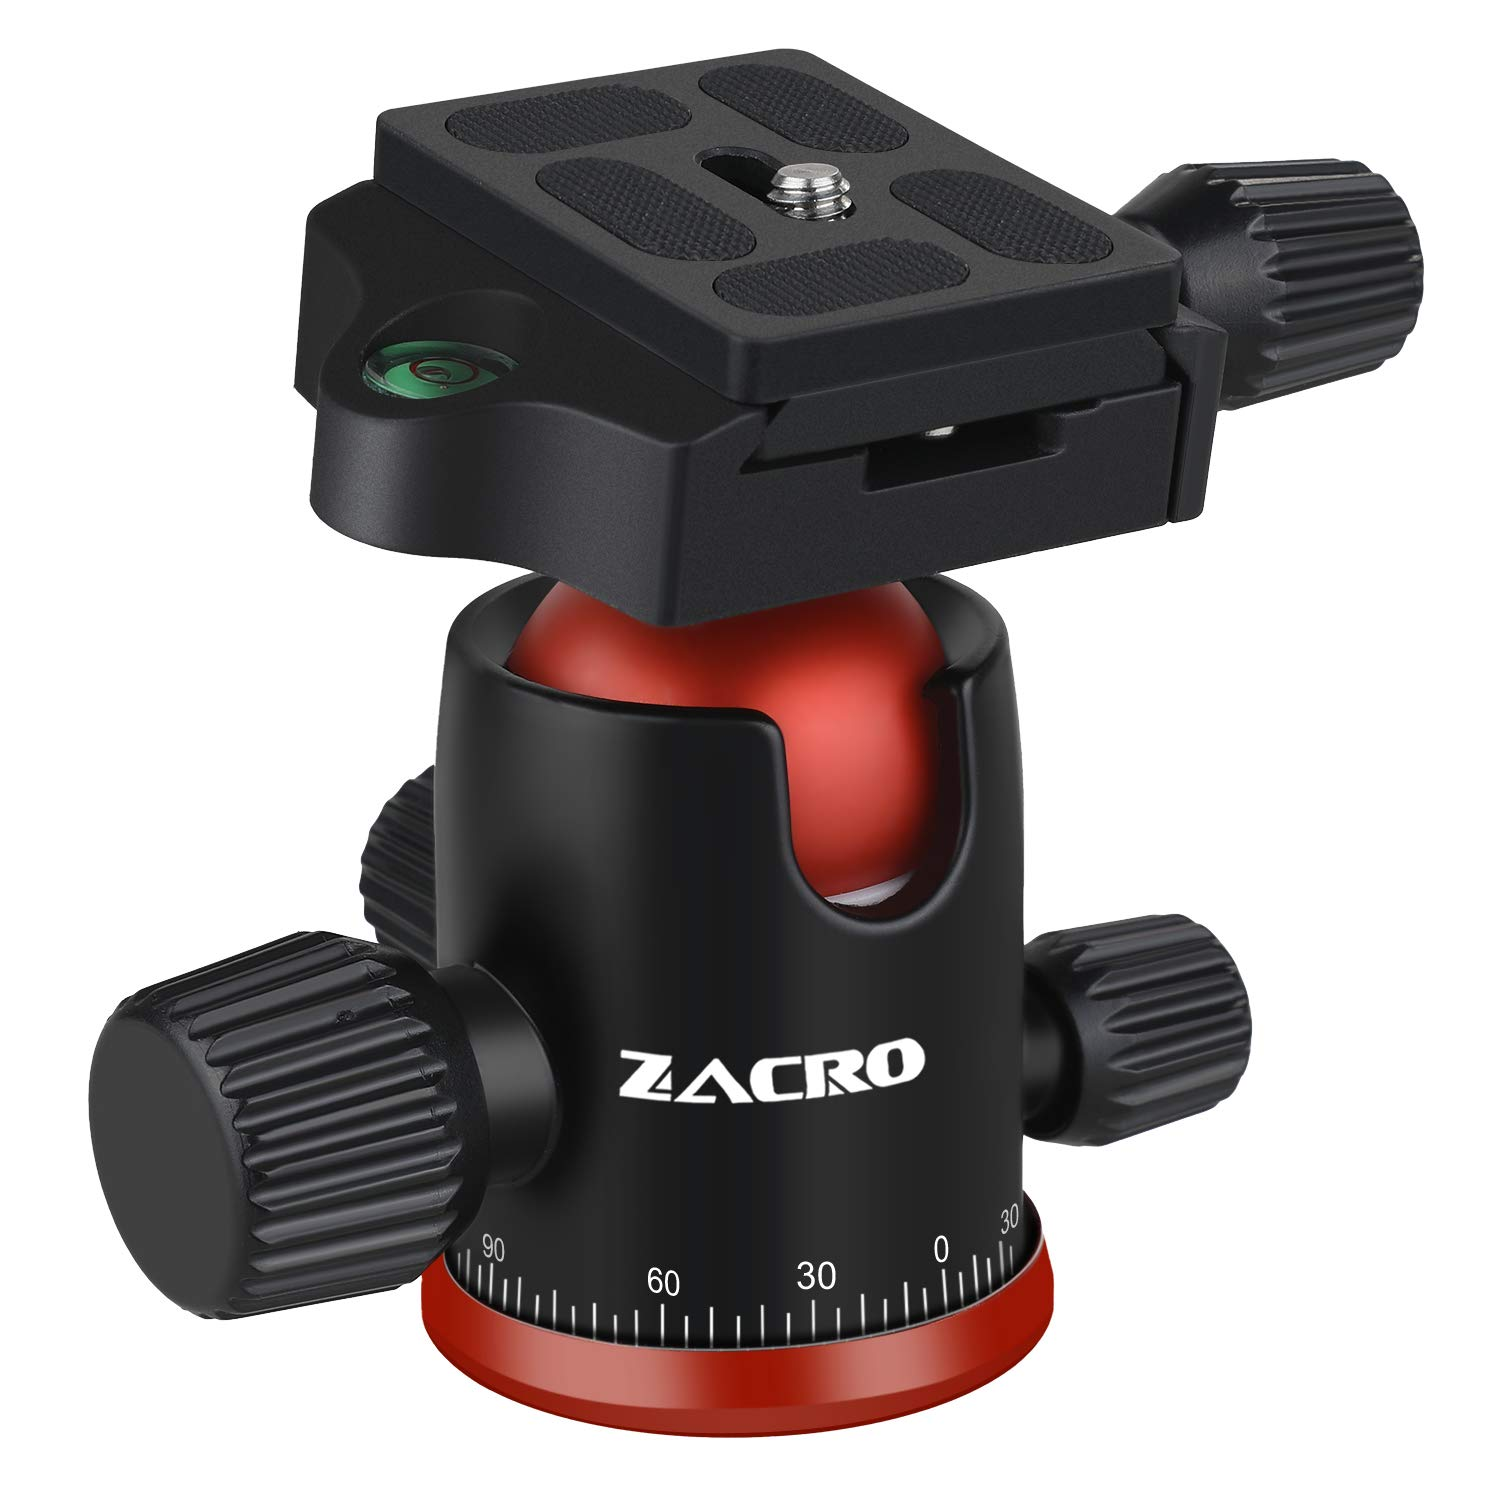 Zacro Camera Panoramic Ball Head - 360 Degree Rotating Tripod Head for Tripod/Monopod/Slider/DSLR Camera/Camcorder, Max Loading 10kg, Suitable for Cameras with 1/4in Screw by Zacro